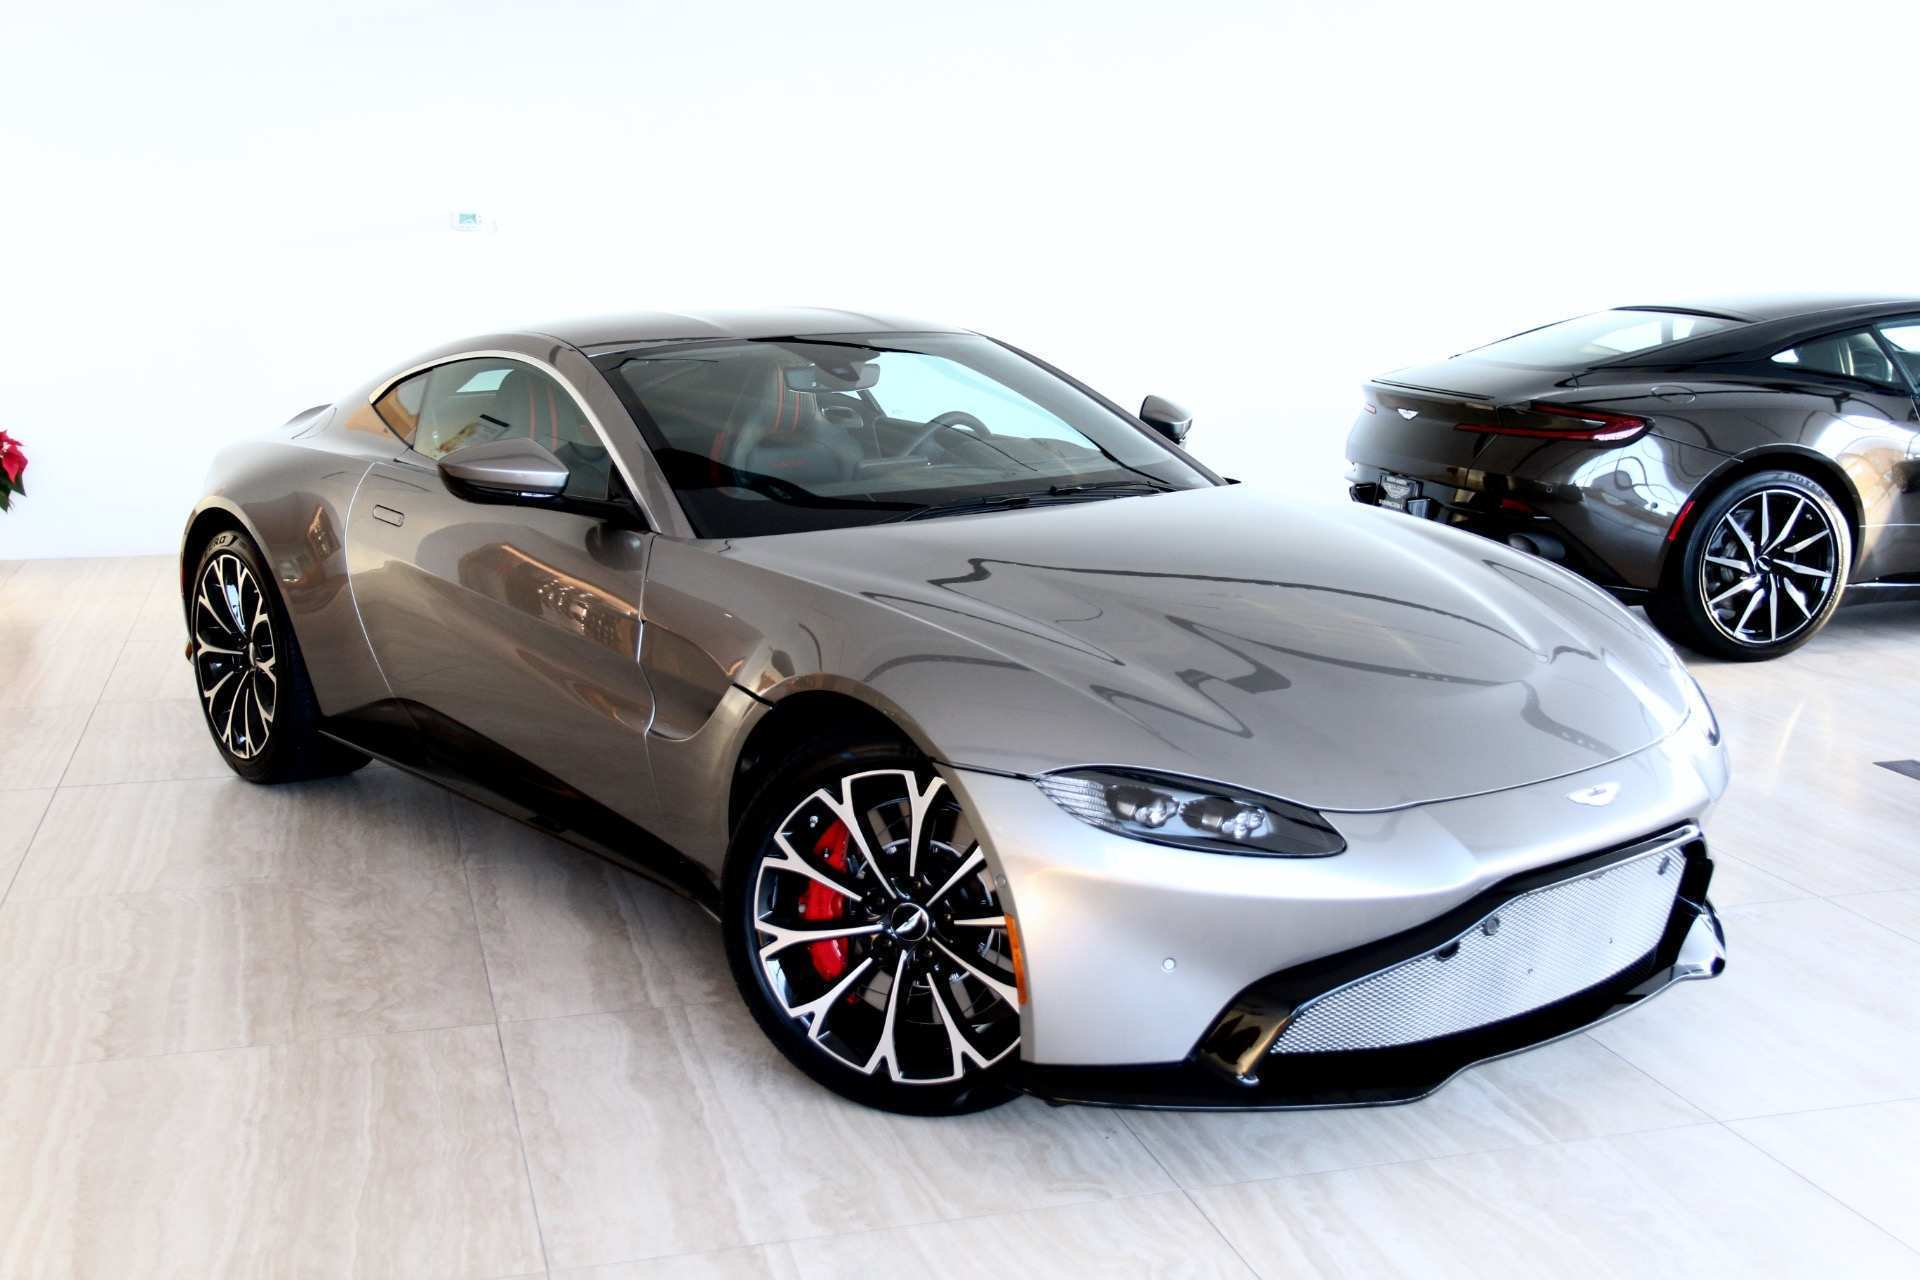 96 The 2019 Aston Martin Vantage Msrp History by 2019 Aston Martin Vantage Msrp